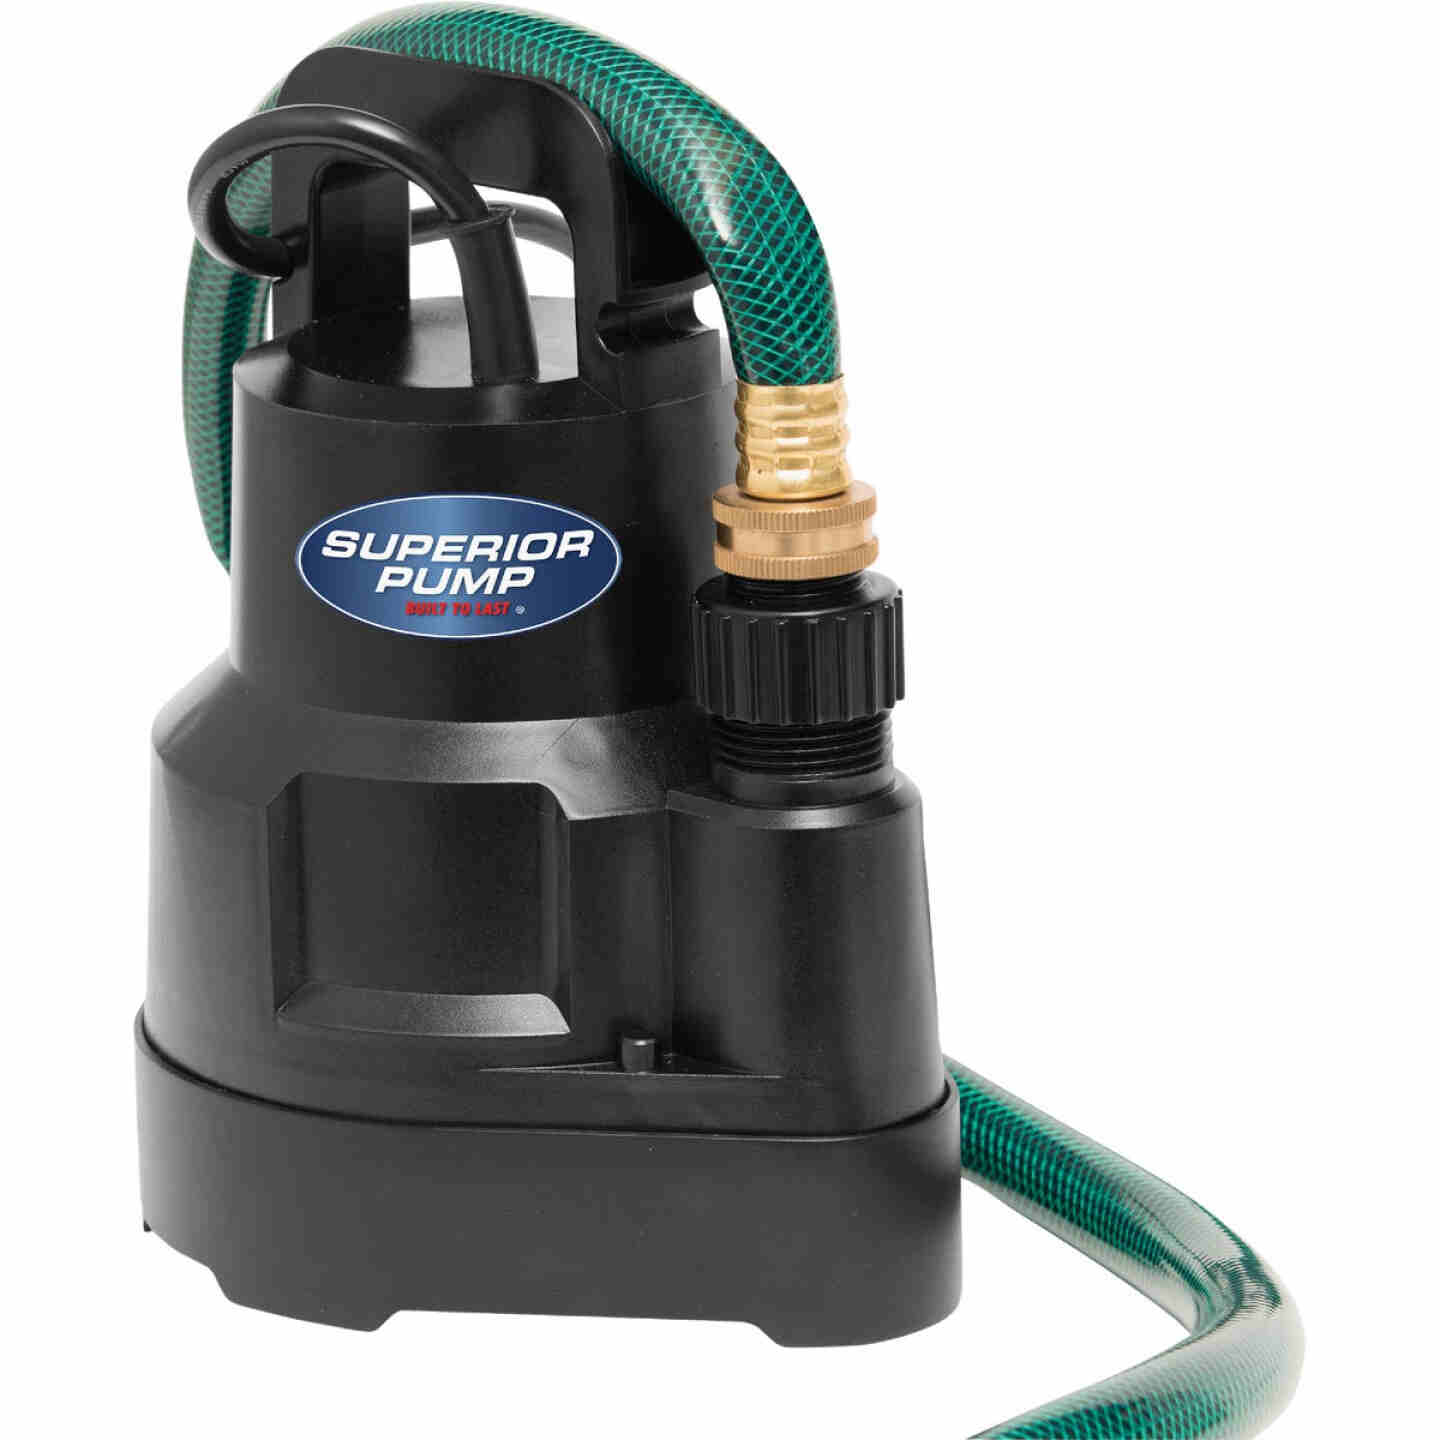 Superior Pump 1/6 HP 1920 GPH Oil-Free Submersible Utility Pump Image 2